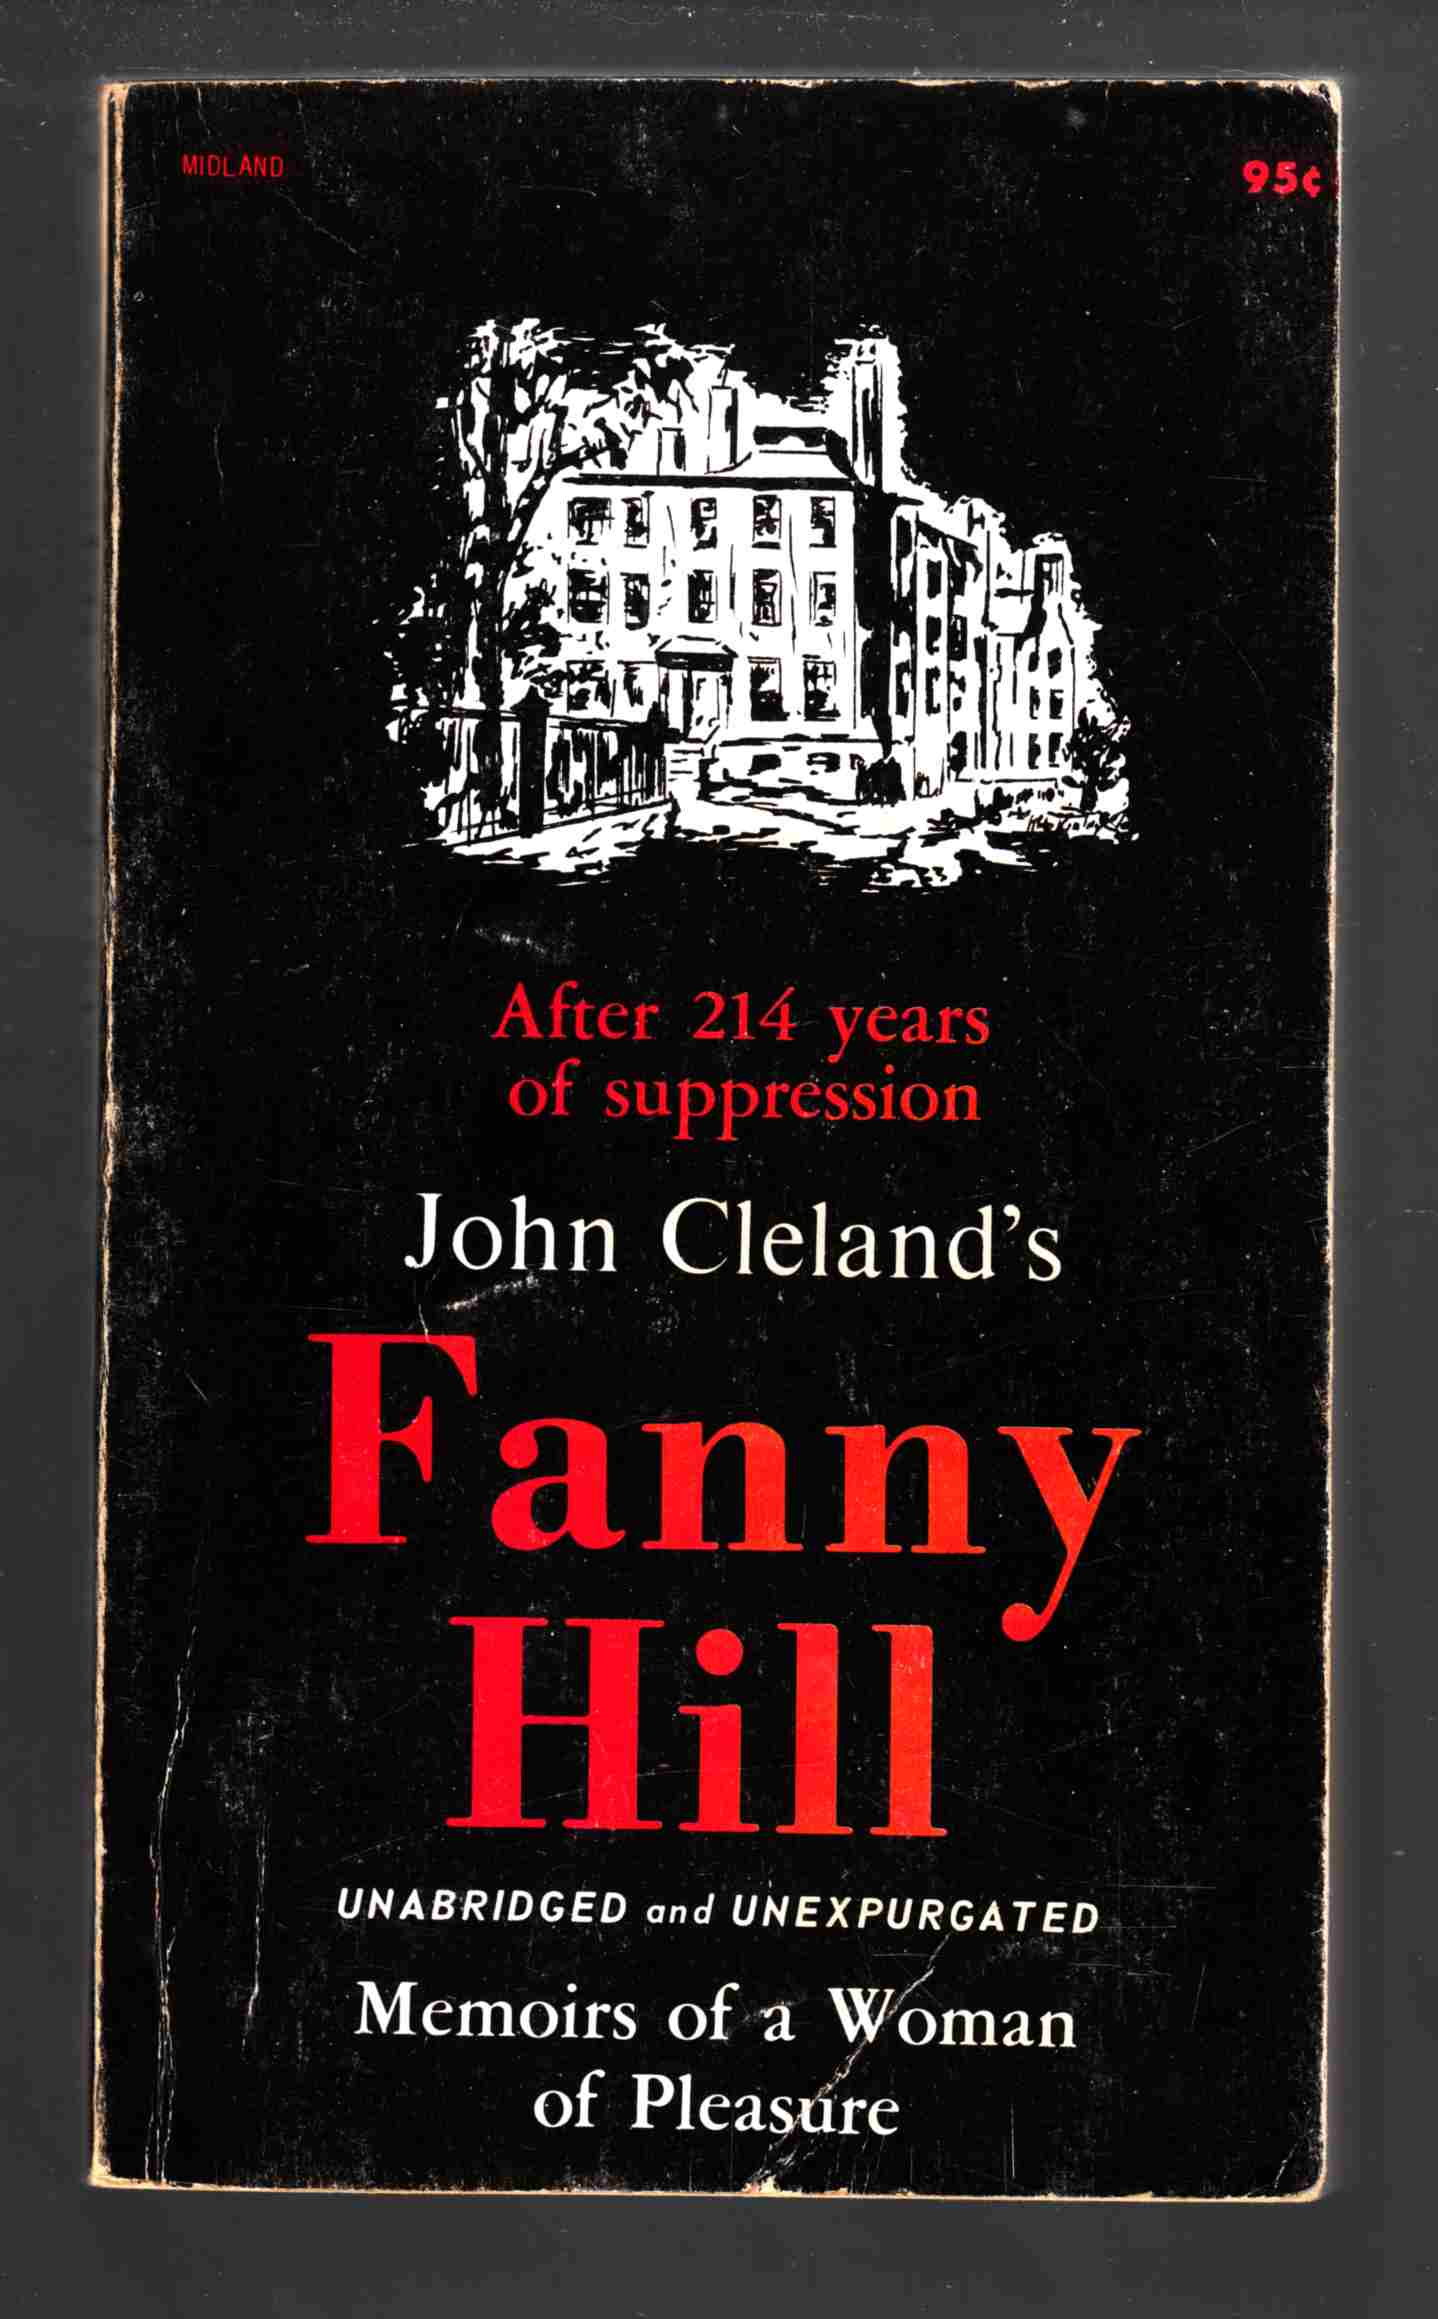 Image for Fanny Hill Memoirs of a Woman of Pleasure